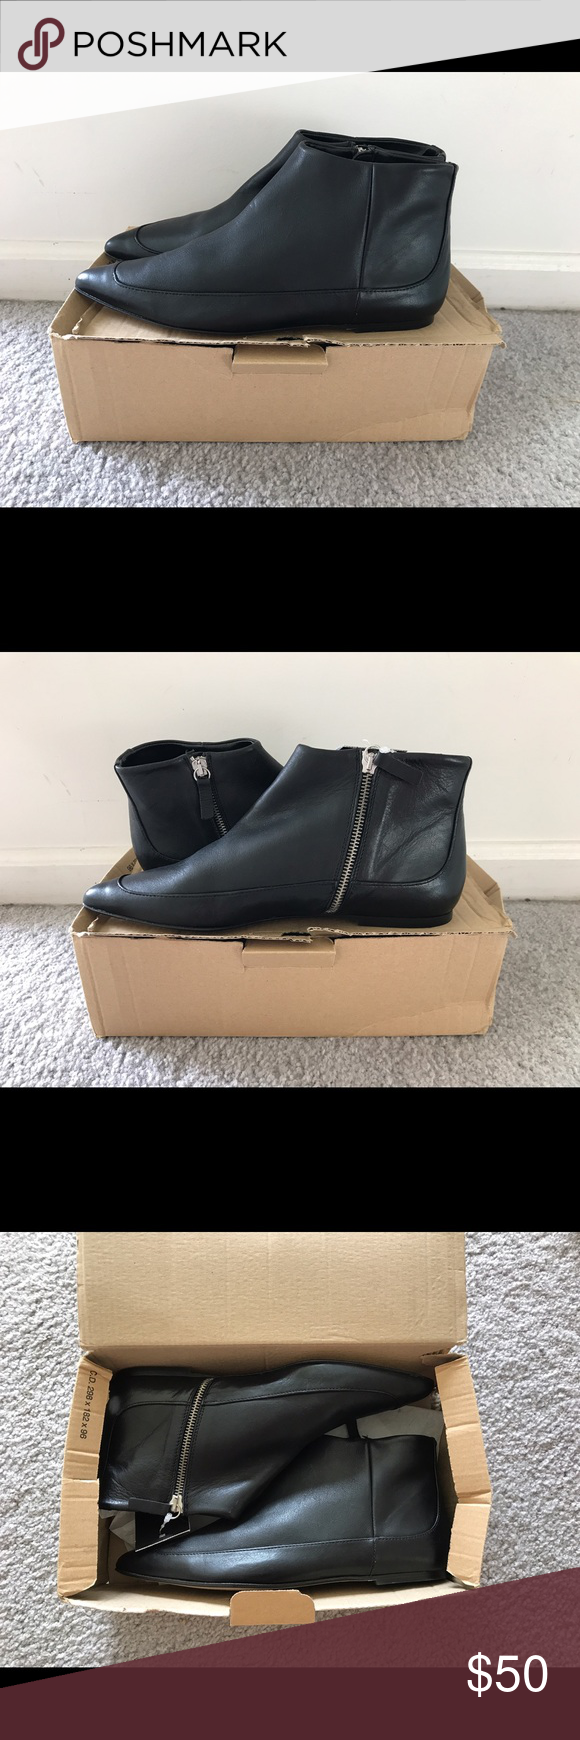 NWT Zara Black Flat Ankle Booties Never worn! Ordered 2 pairs & never returned them! Black leather. Euro size 39. USA 8. Zip on sides. Zara Shoes Ankle Boots & Booties